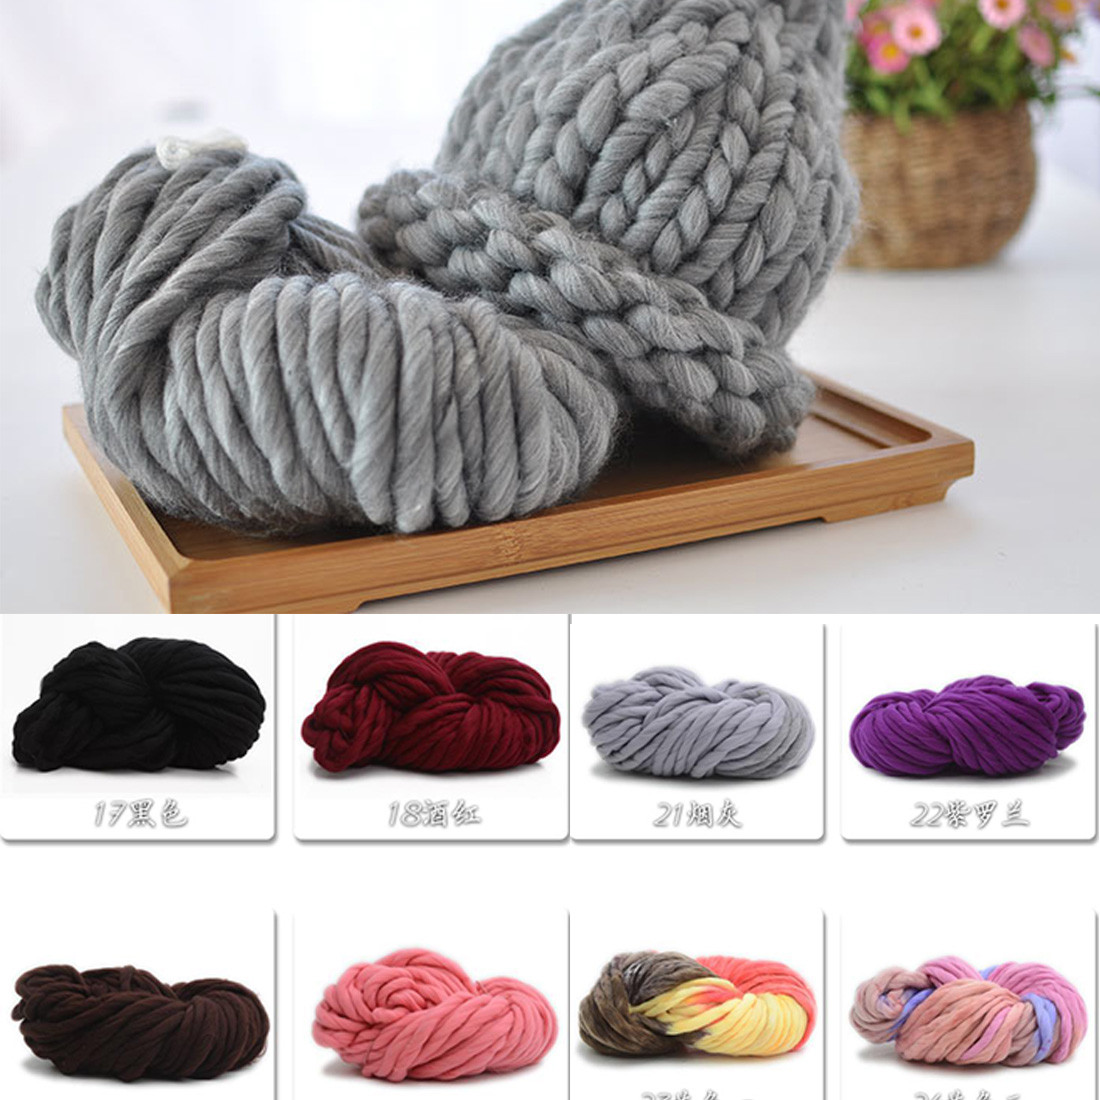 Softest Yarn for Crochet Best Of Aliexpress Buy top Quanity Beautiful soft Acrylic Of Charming 43 Images softest Yarn for Crochet